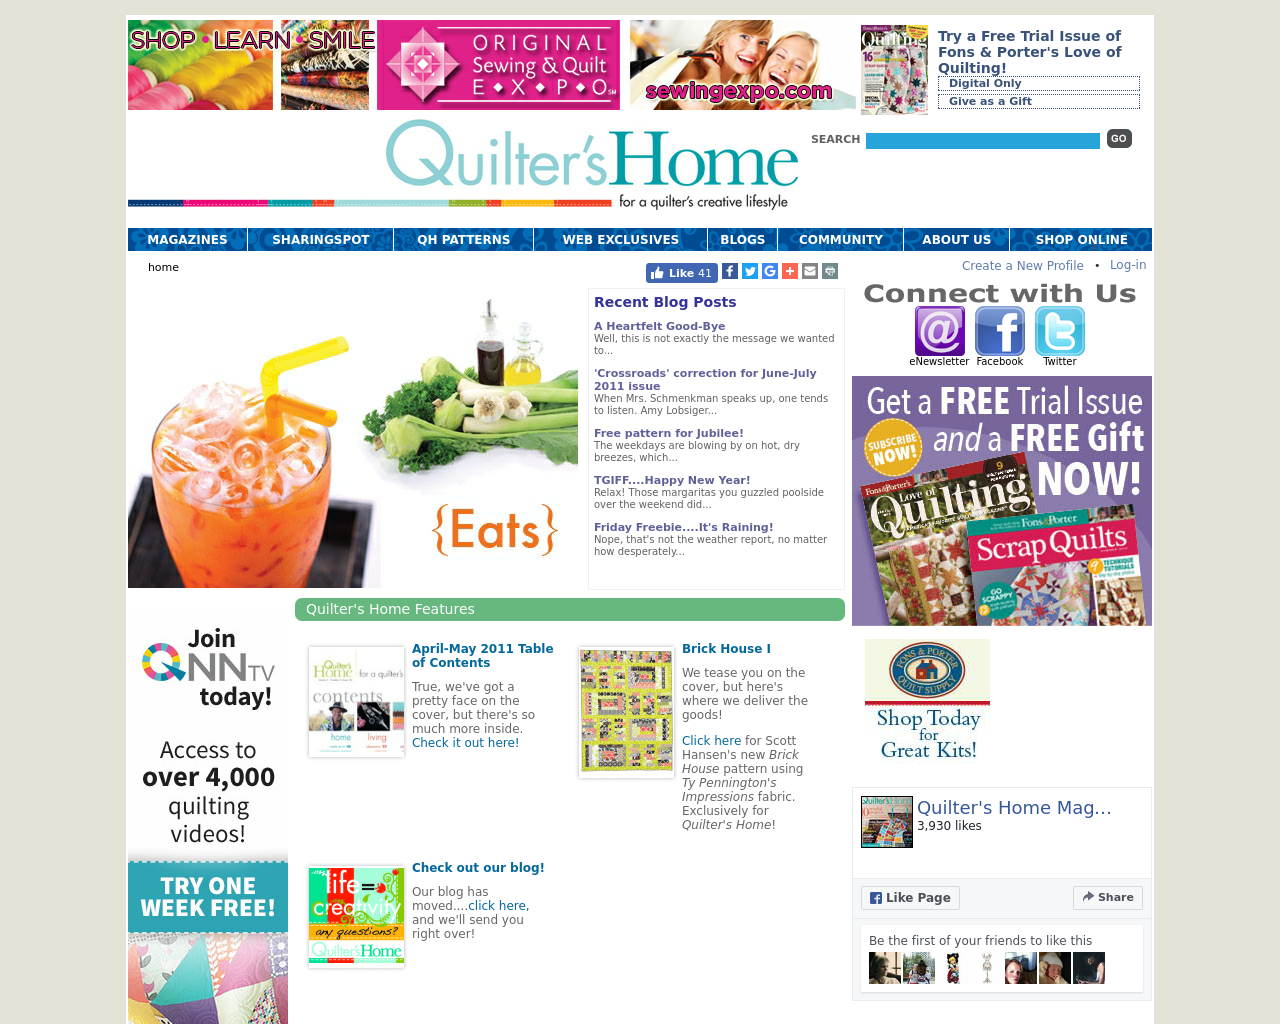 Quilter's-Home-Magazine-Advertising-Reviews-Pricing